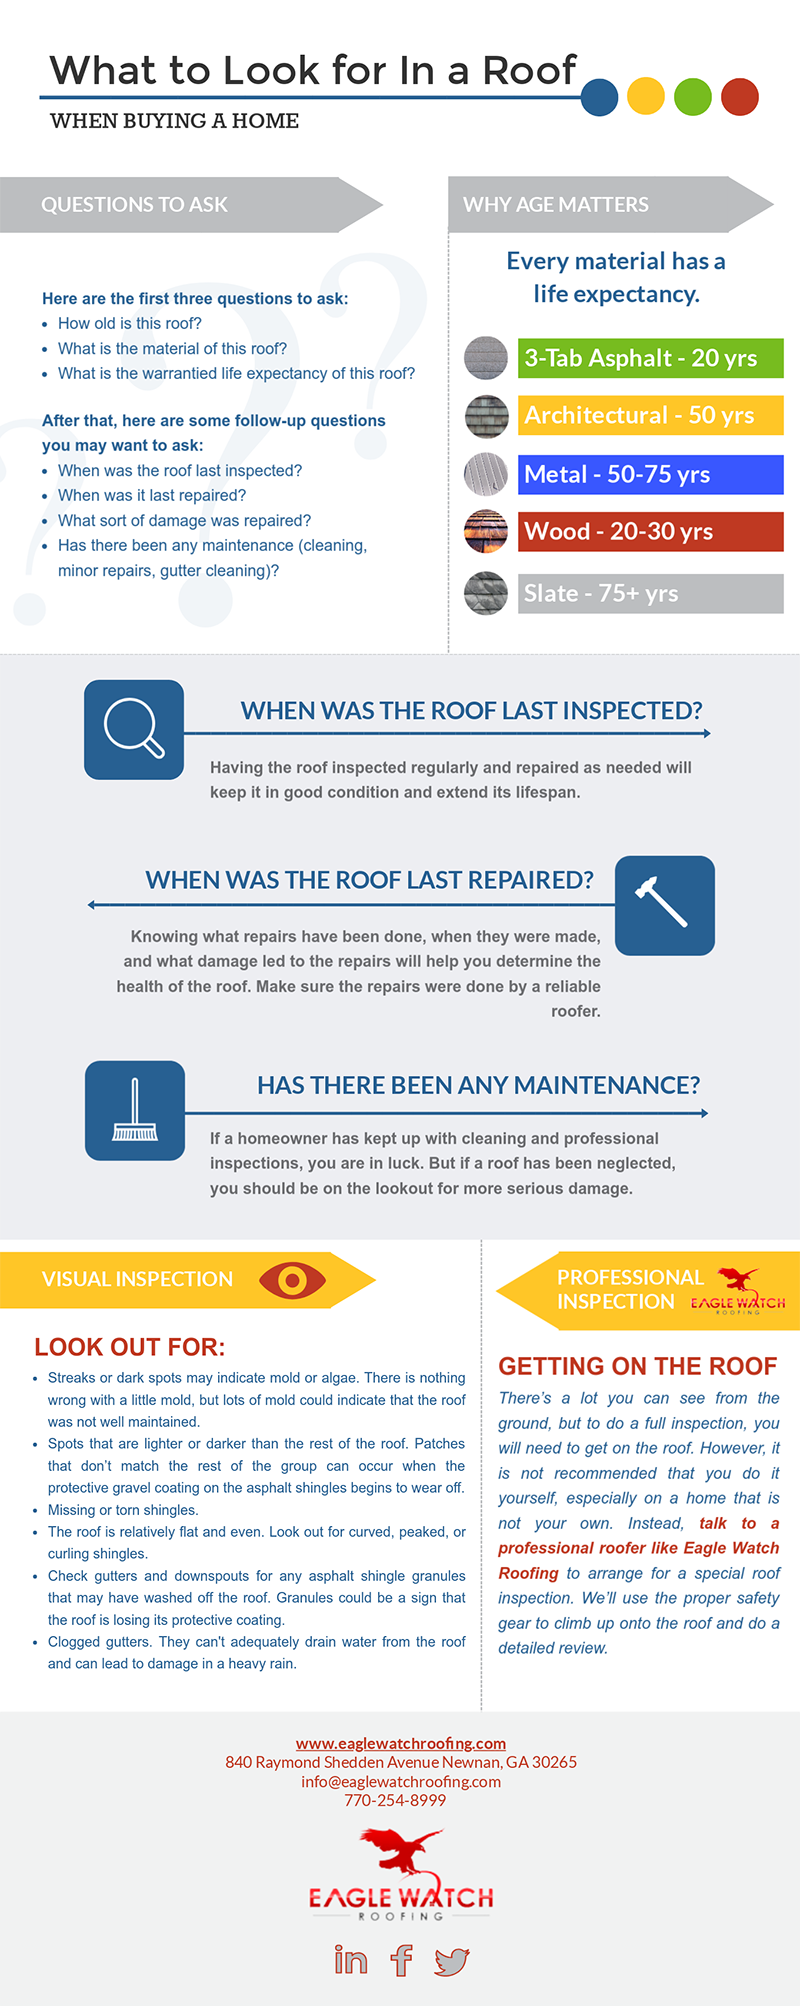 What to Look for In a Roof When Buying a Home [infographic]